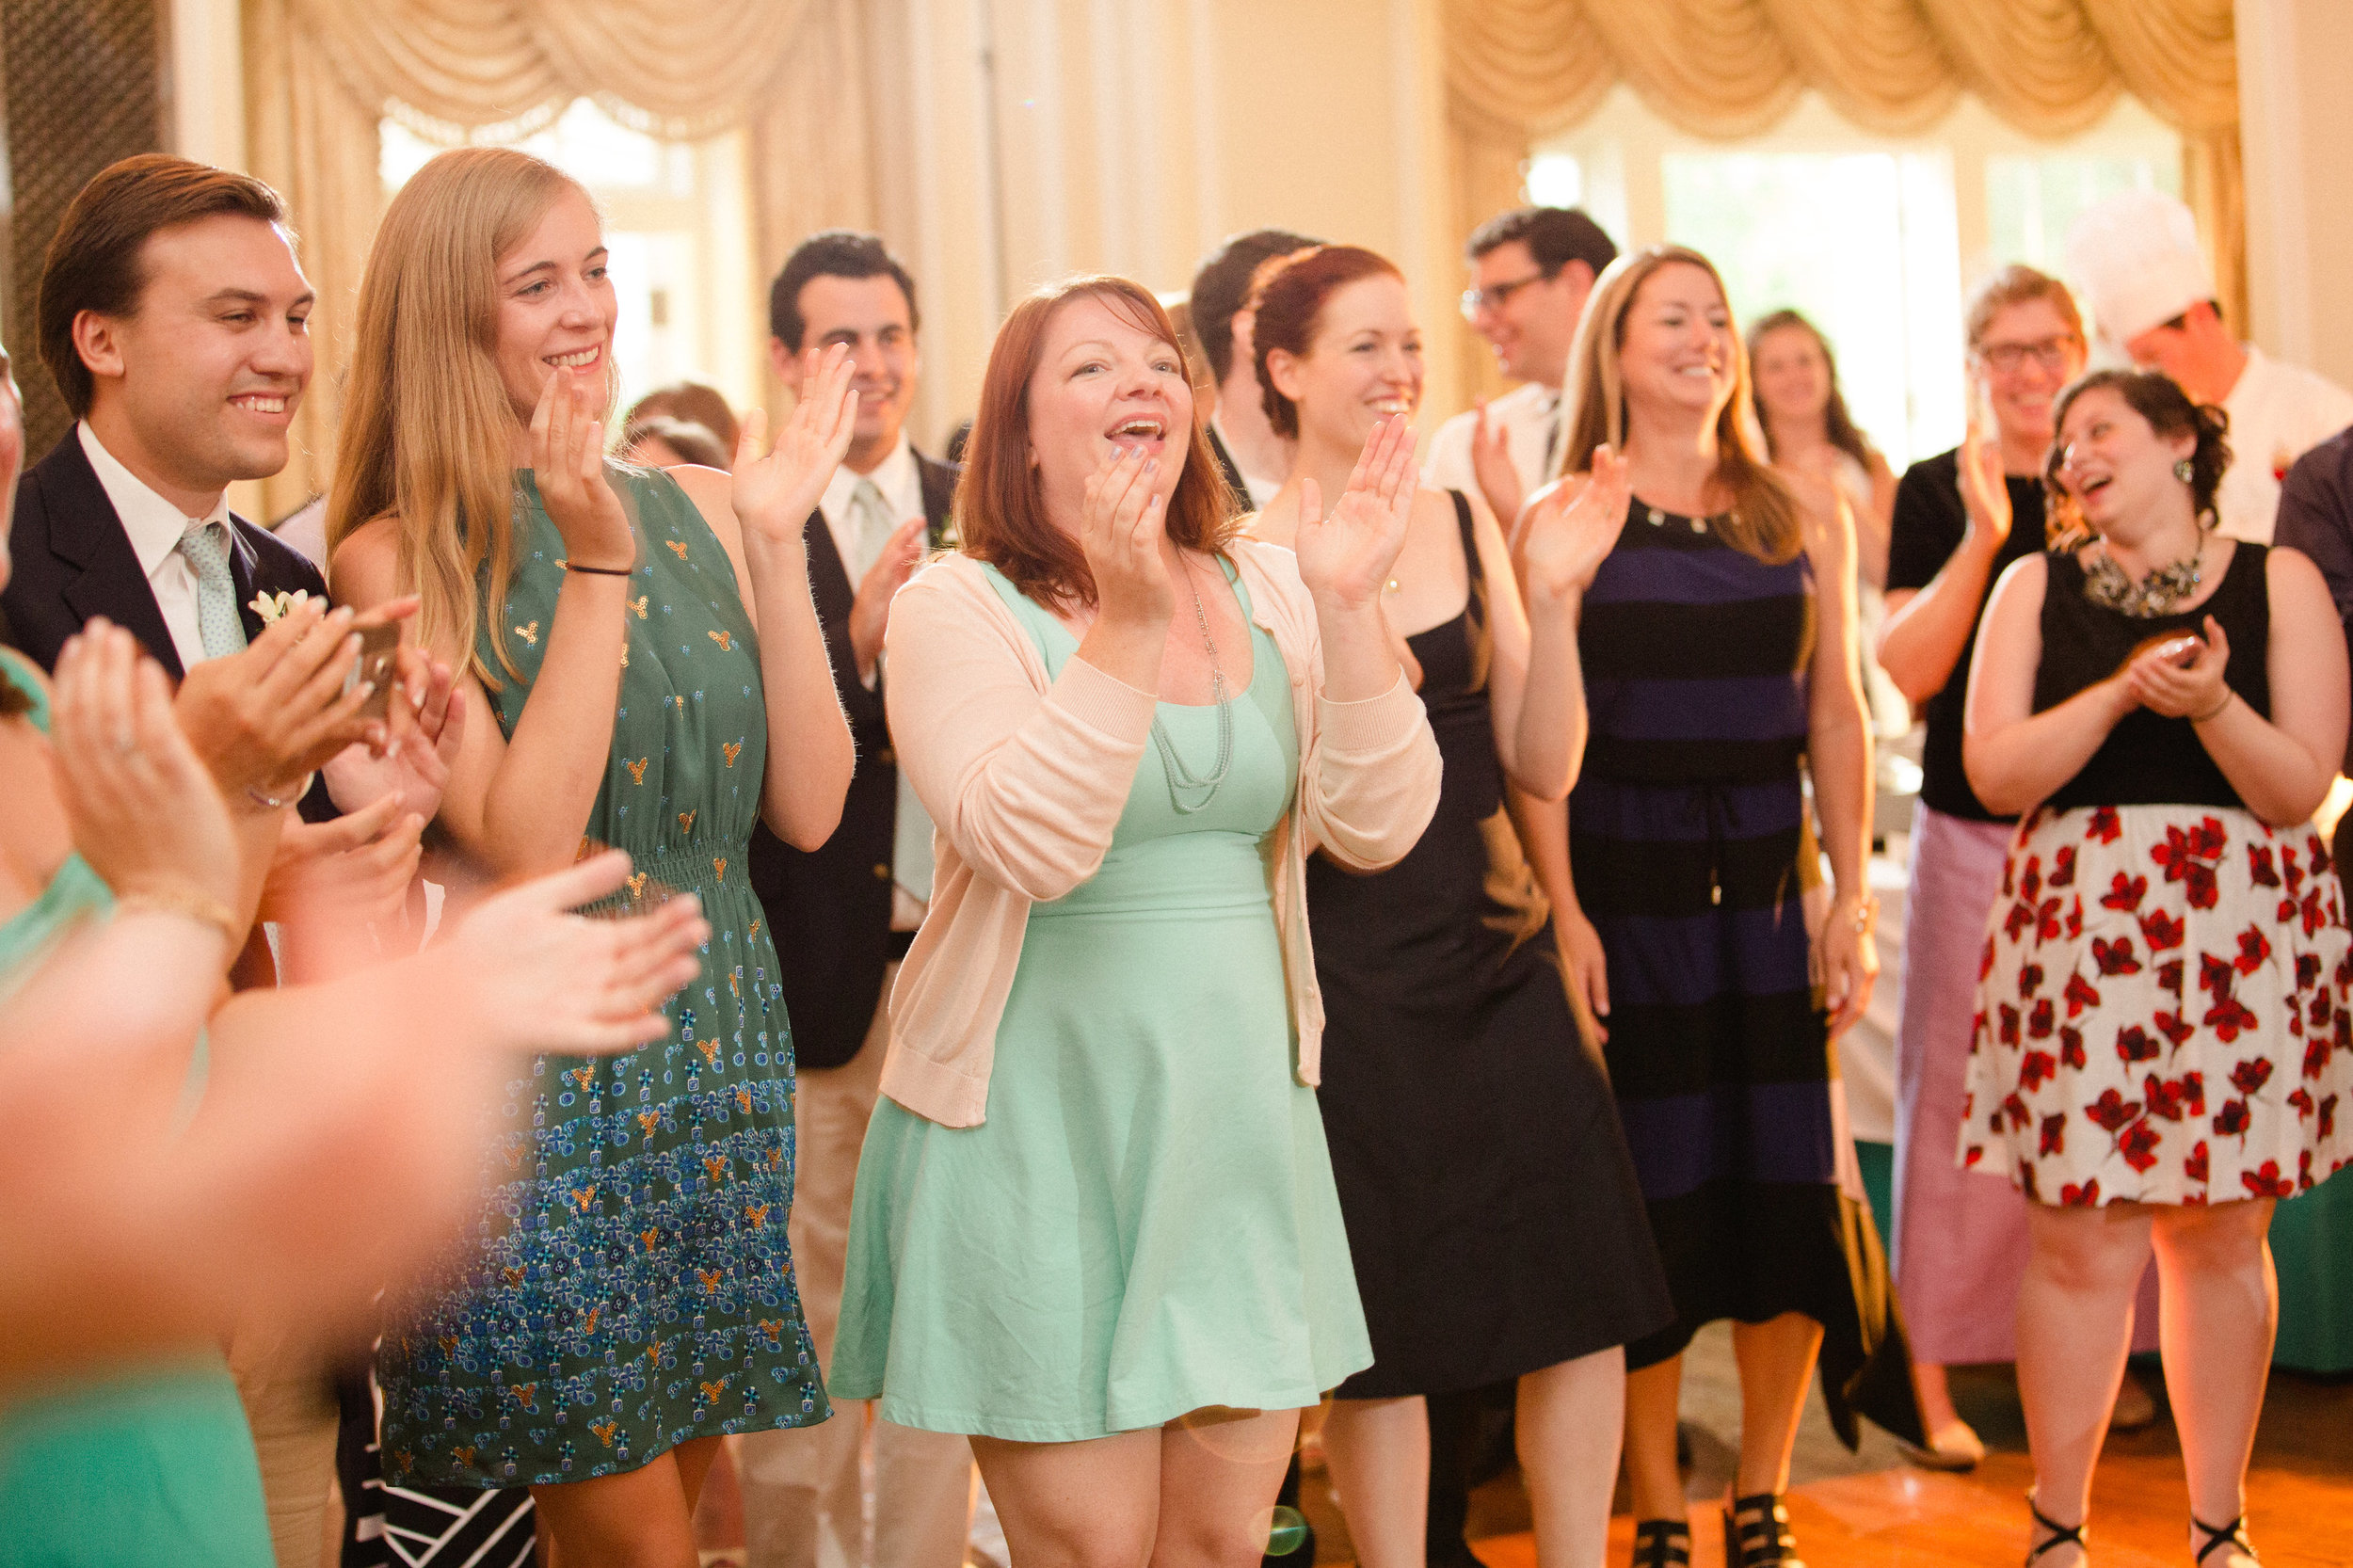 Vness-Photography-Chevy-Chase-Country-Club-A&R-Wedding-704.jpg